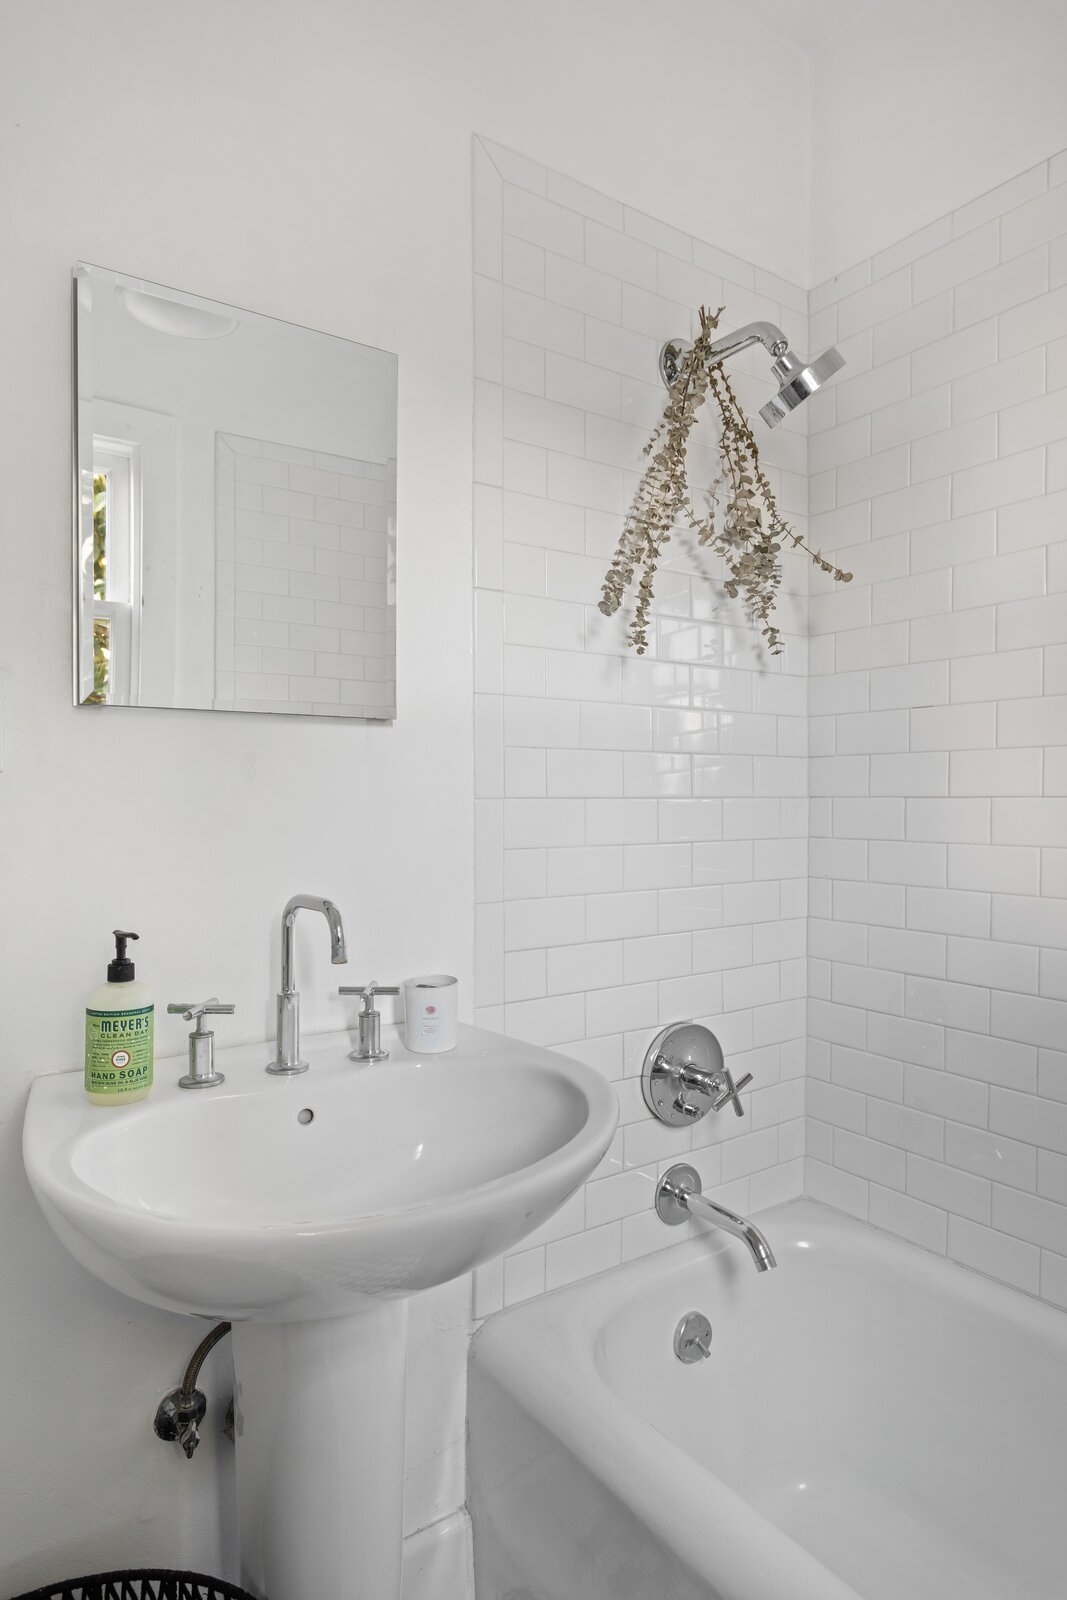 1920s Spanish Revival home bathroom